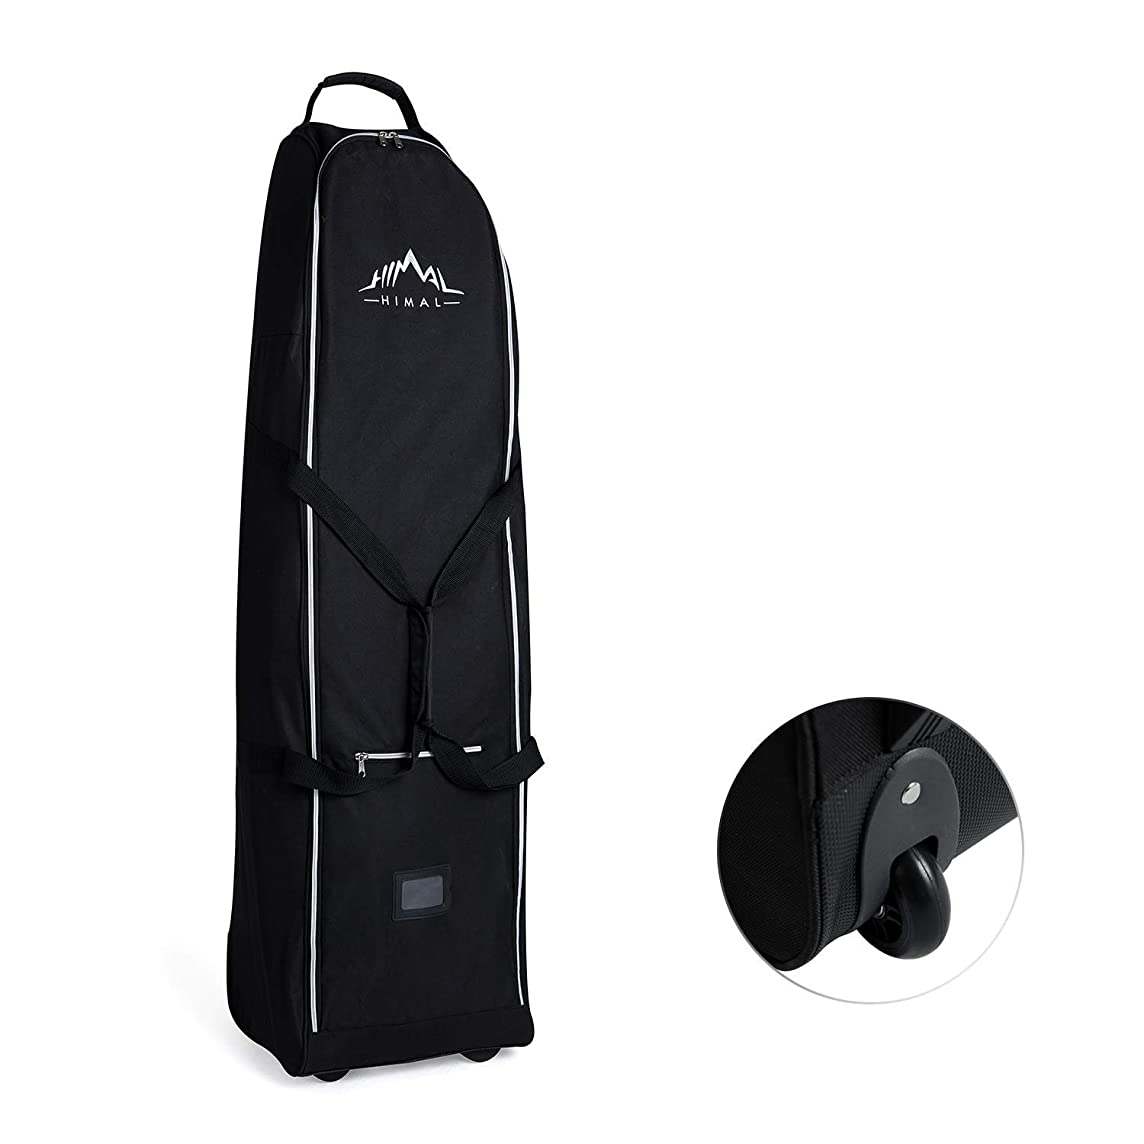 Himal Soft-Sided Golf Travel Bag - Heavy Duty 600D Polyester Oxford Wear-Resistant, Excellent Zipper Universal Size with Wheels